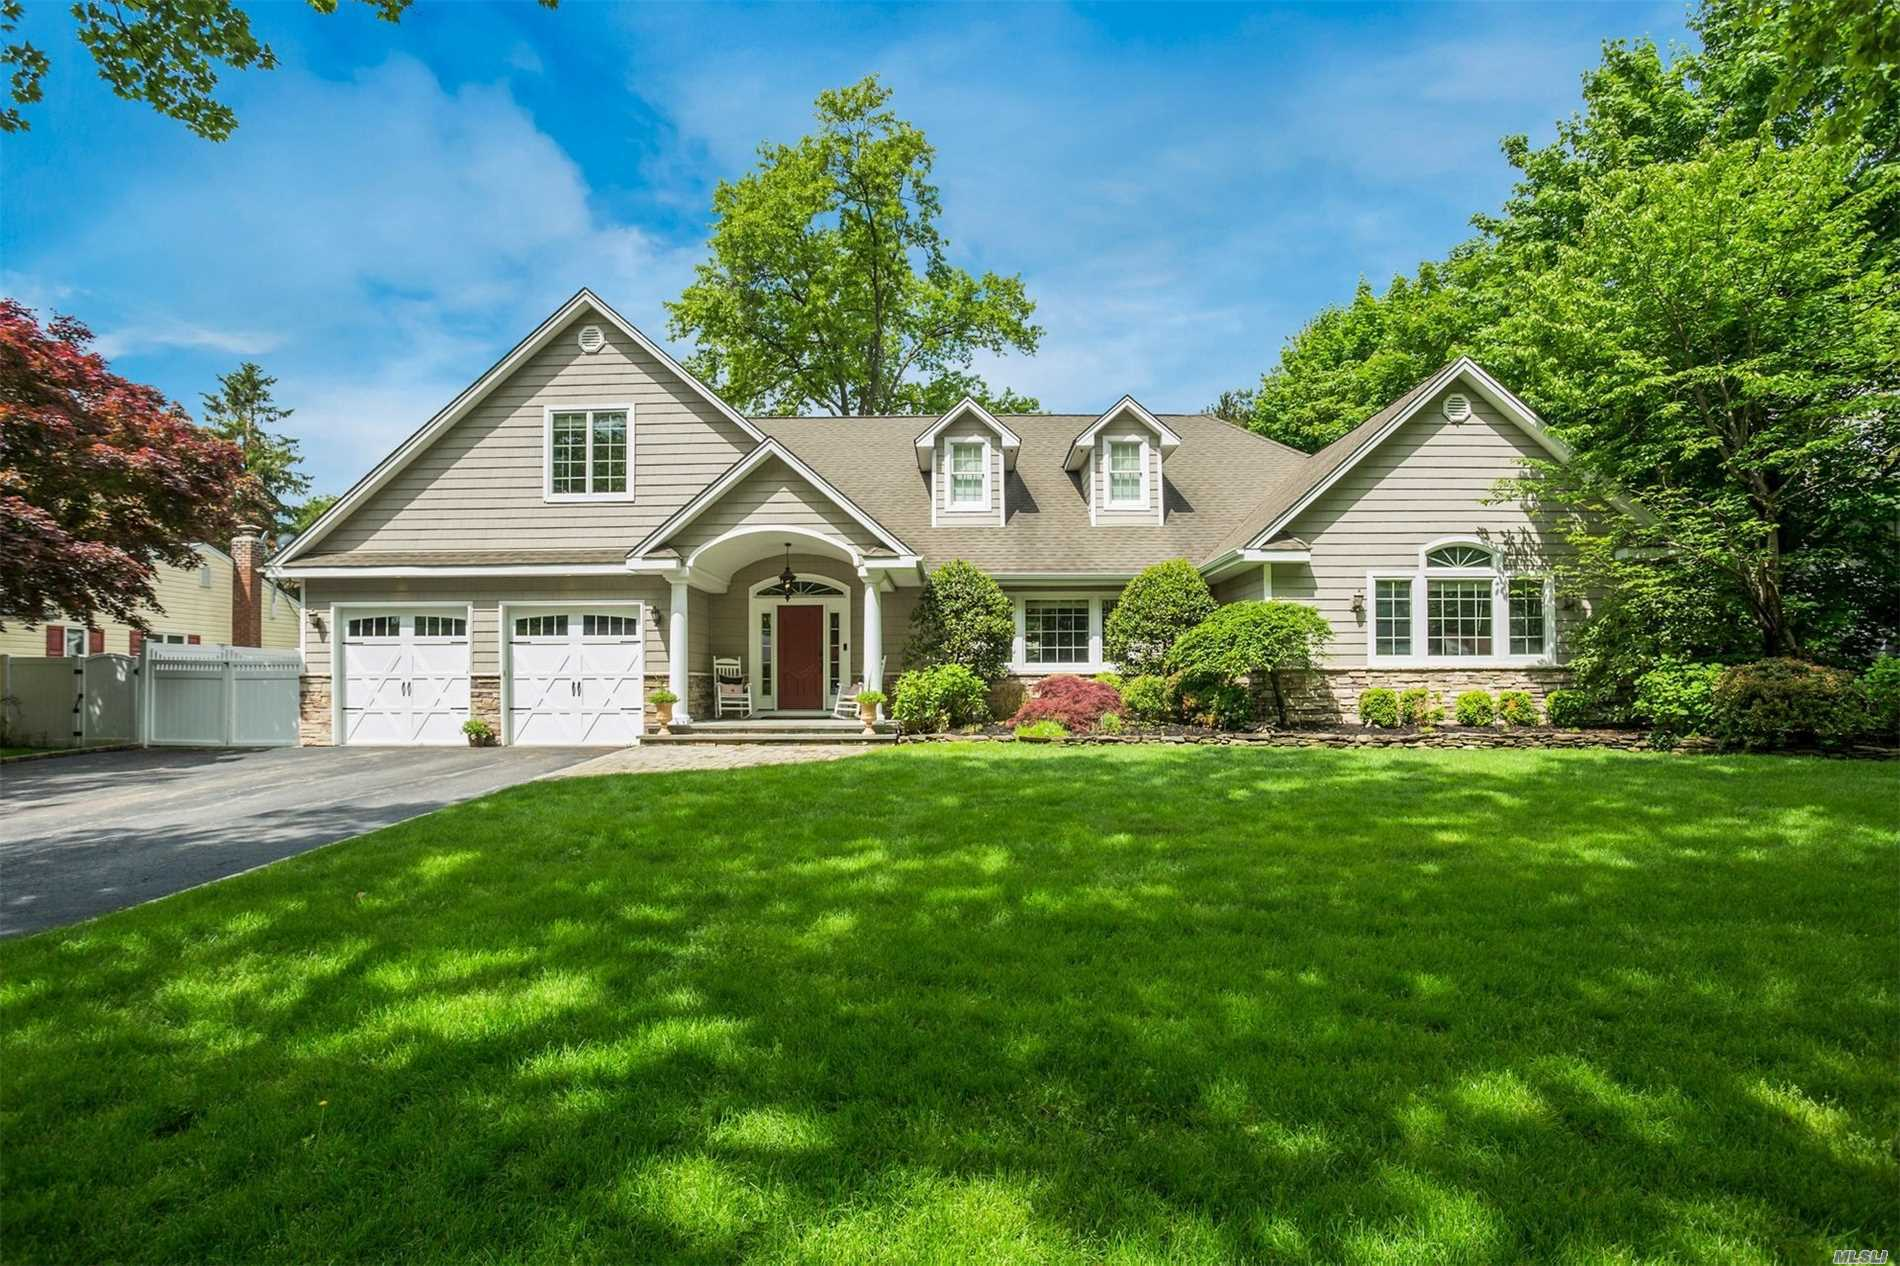 Diamond Custom Open Concept Colonial In Harborfields Sd, Beautiful French Contemporary Kitchen, Granite, Prof. Grade Ss Appliances, Stone Wood Burning Fp. Picturesque Backyard Oasis With An Ig Salt Water Pool, Pave Patio And Beautiful Lush Grounds. Must See!!